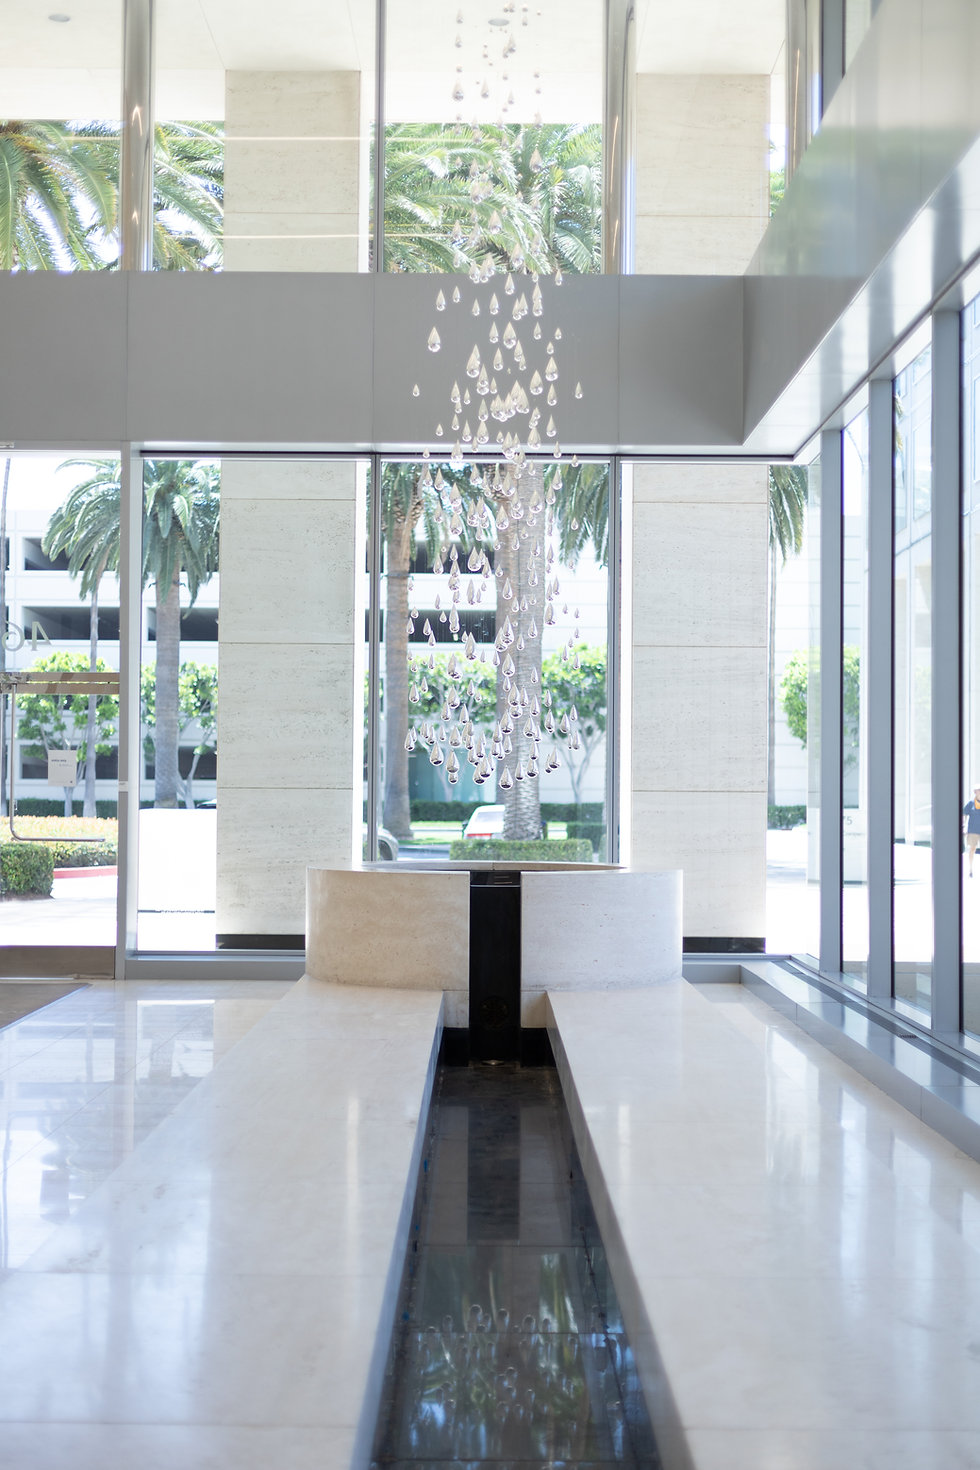 Vertical image of office lobby at MacArthur Court